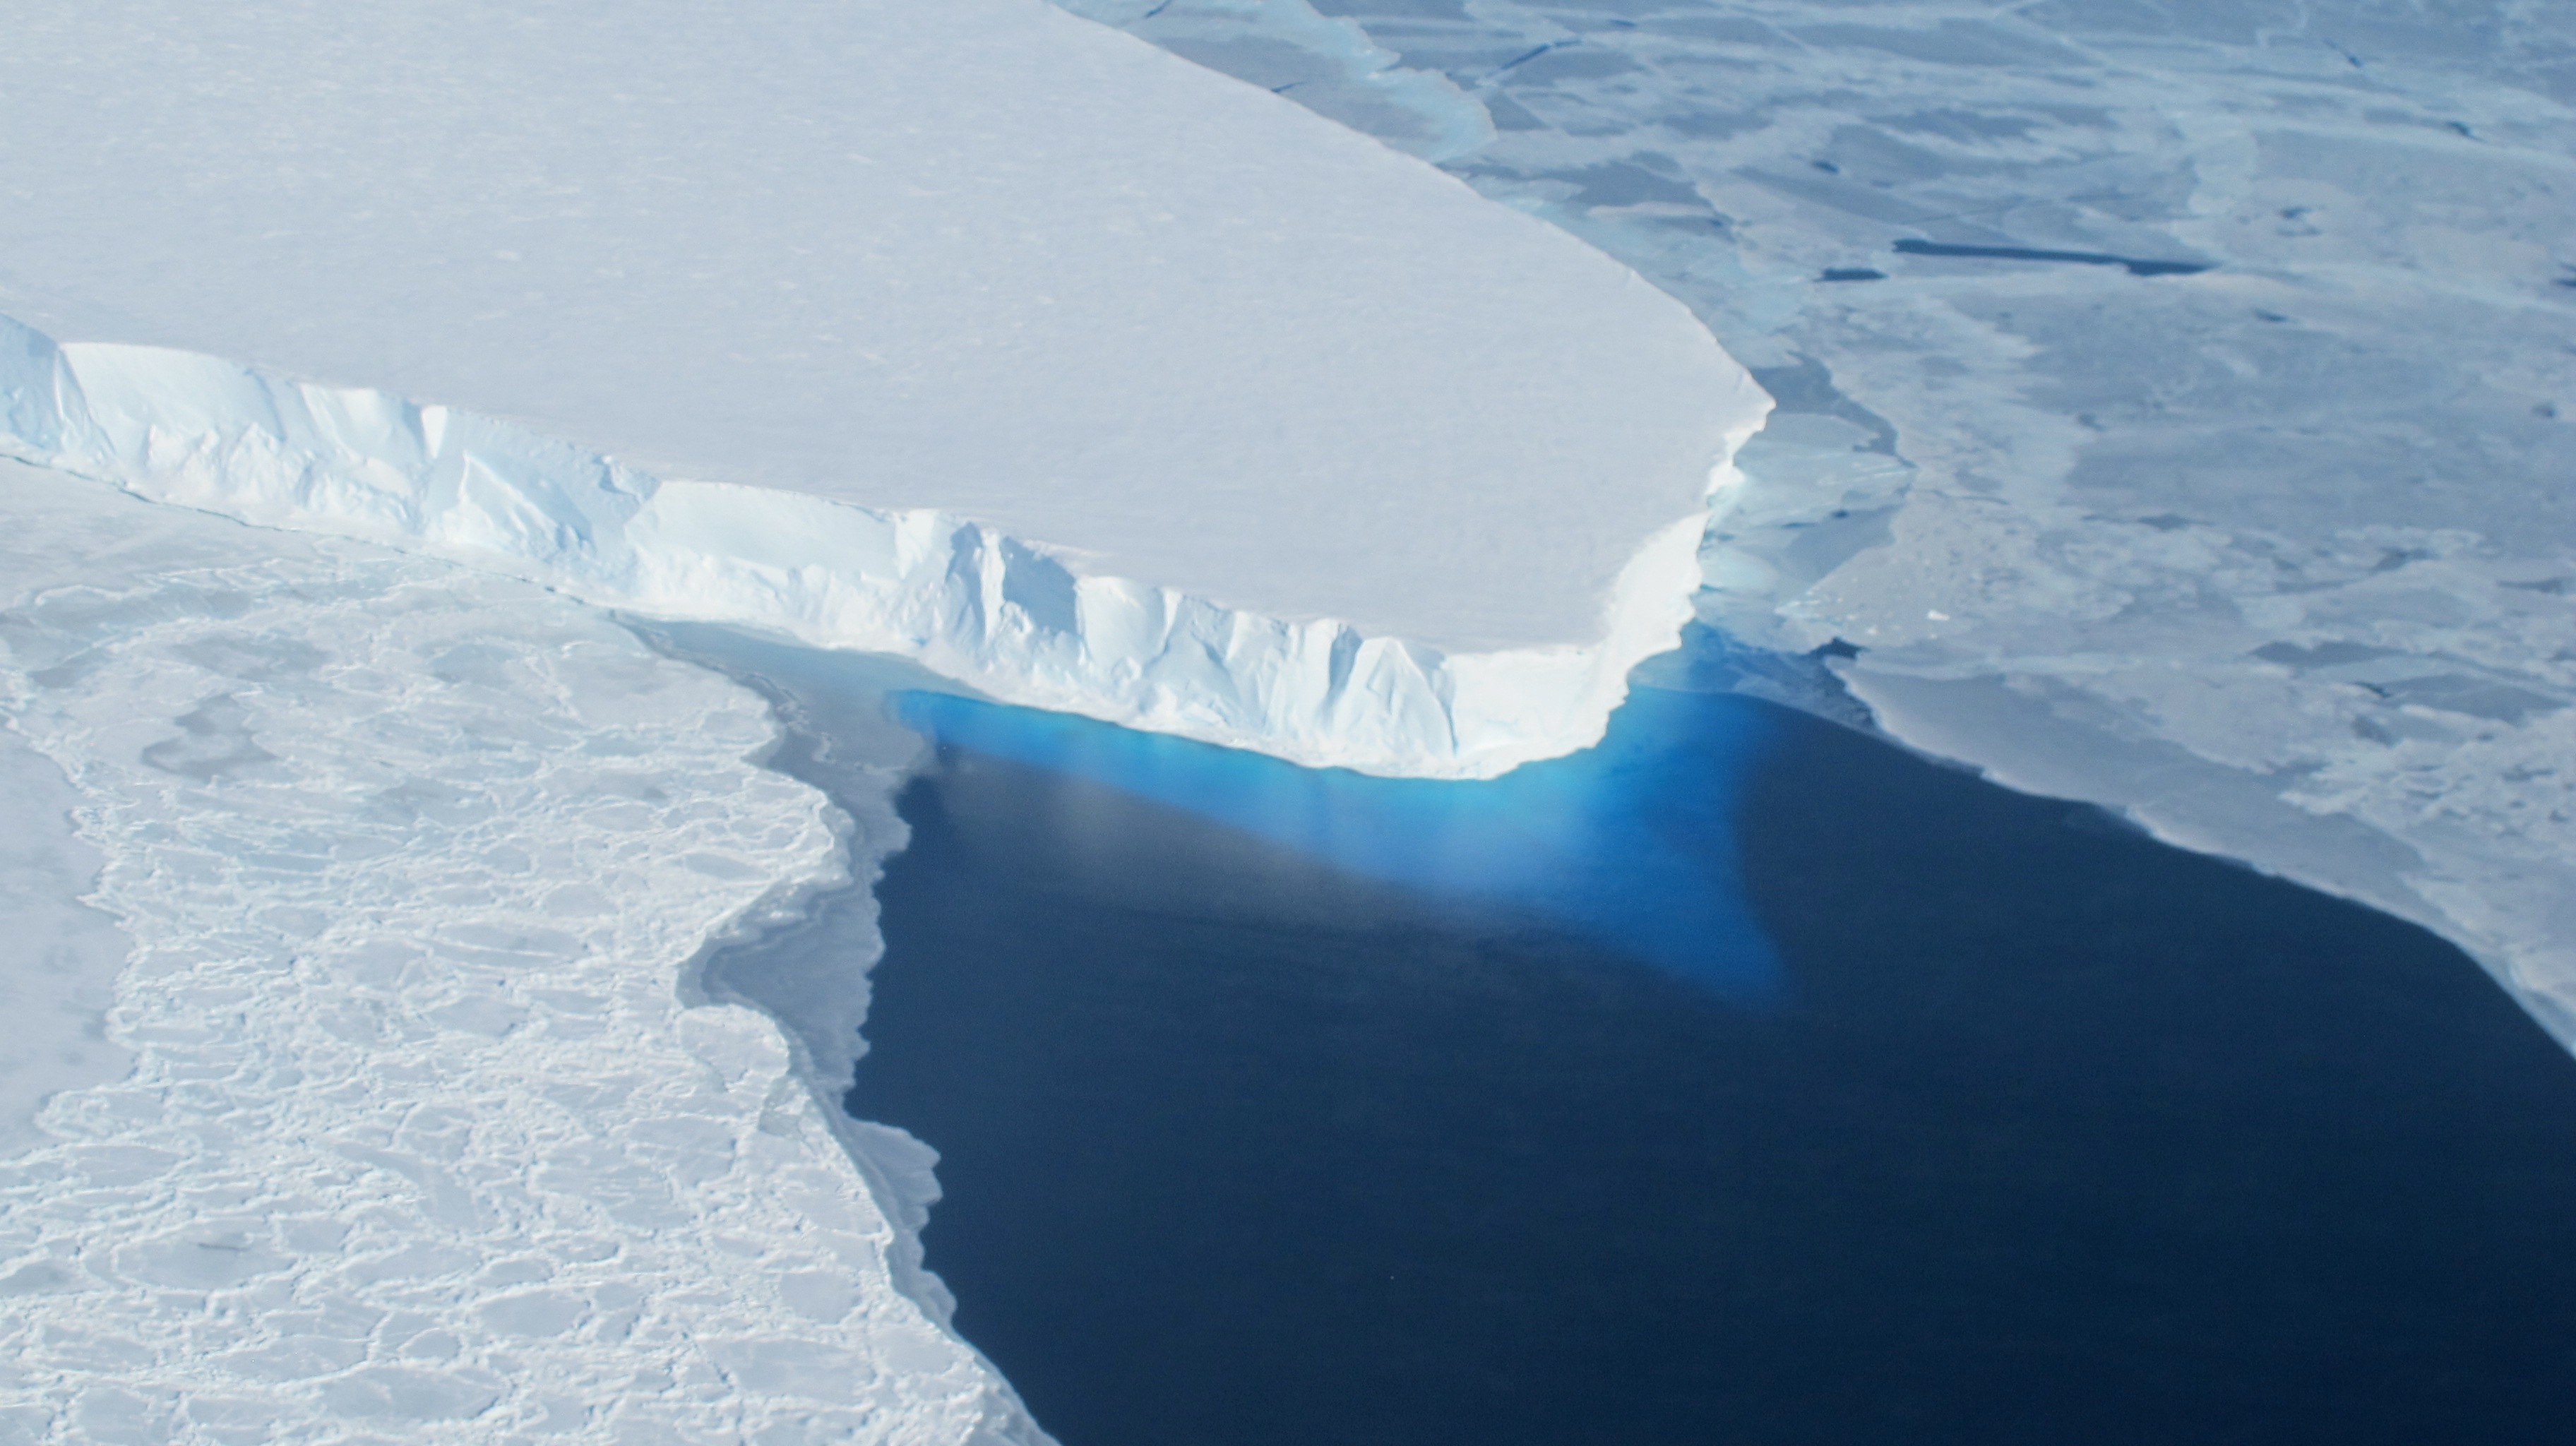 The calving front of Thwaites Ice Shelf looking at the ice below the water's surface. Note how the water acts as a blue filter. Credit: NASA / Jim Yungel